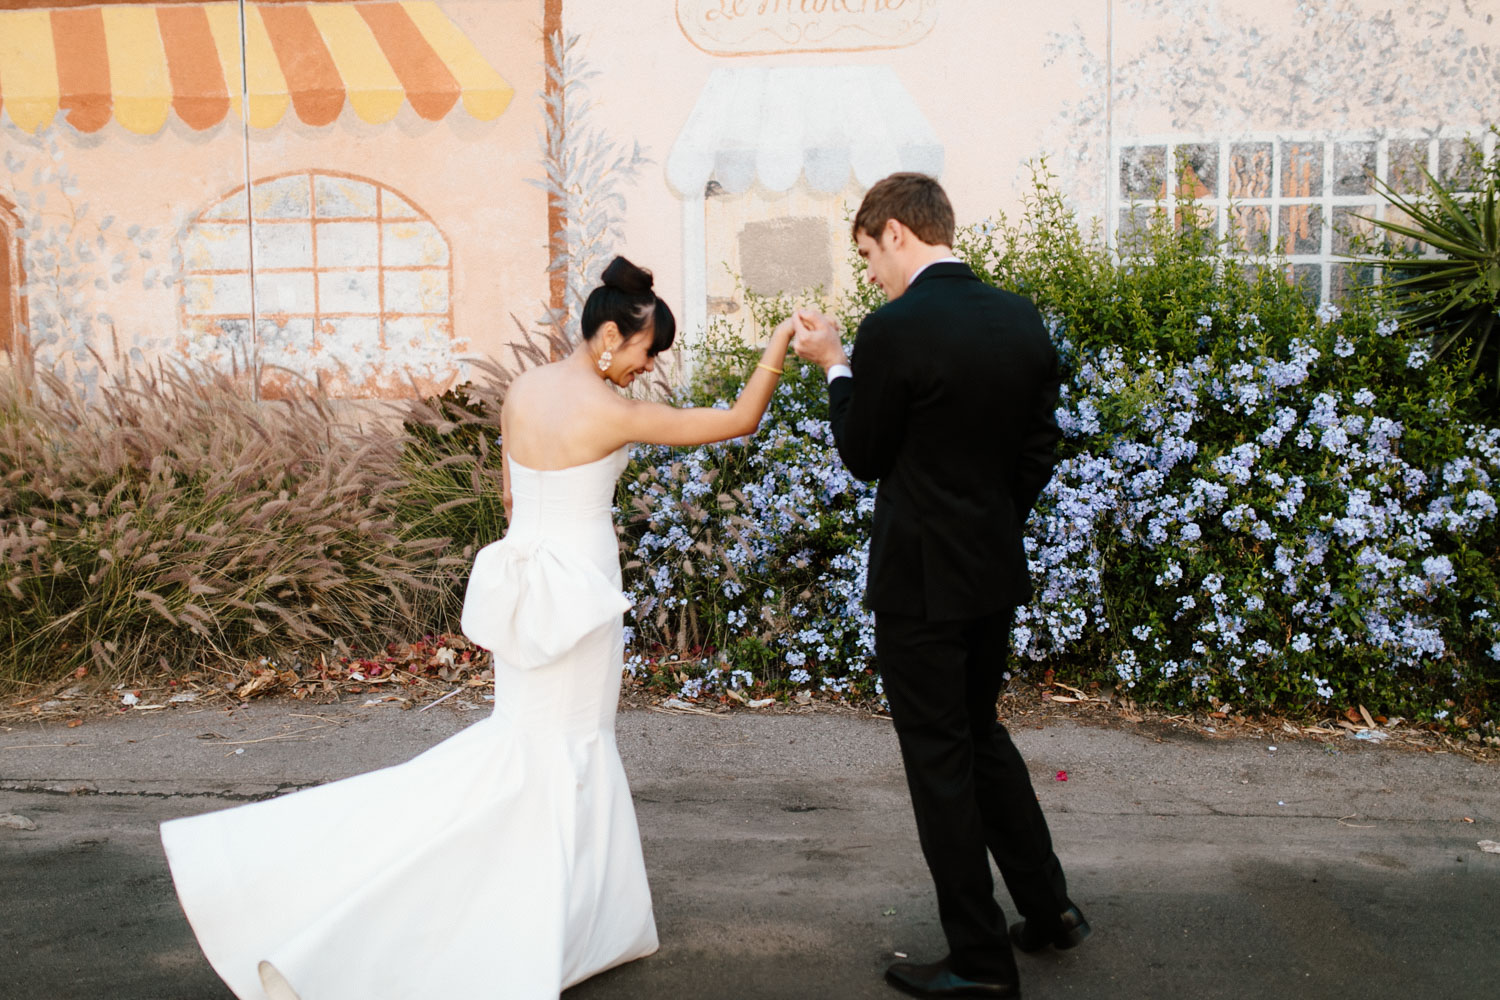 Los Angeles Wedding Photographer, The Elysian  - The Gathering Season x weareleoandkat 068.JPG